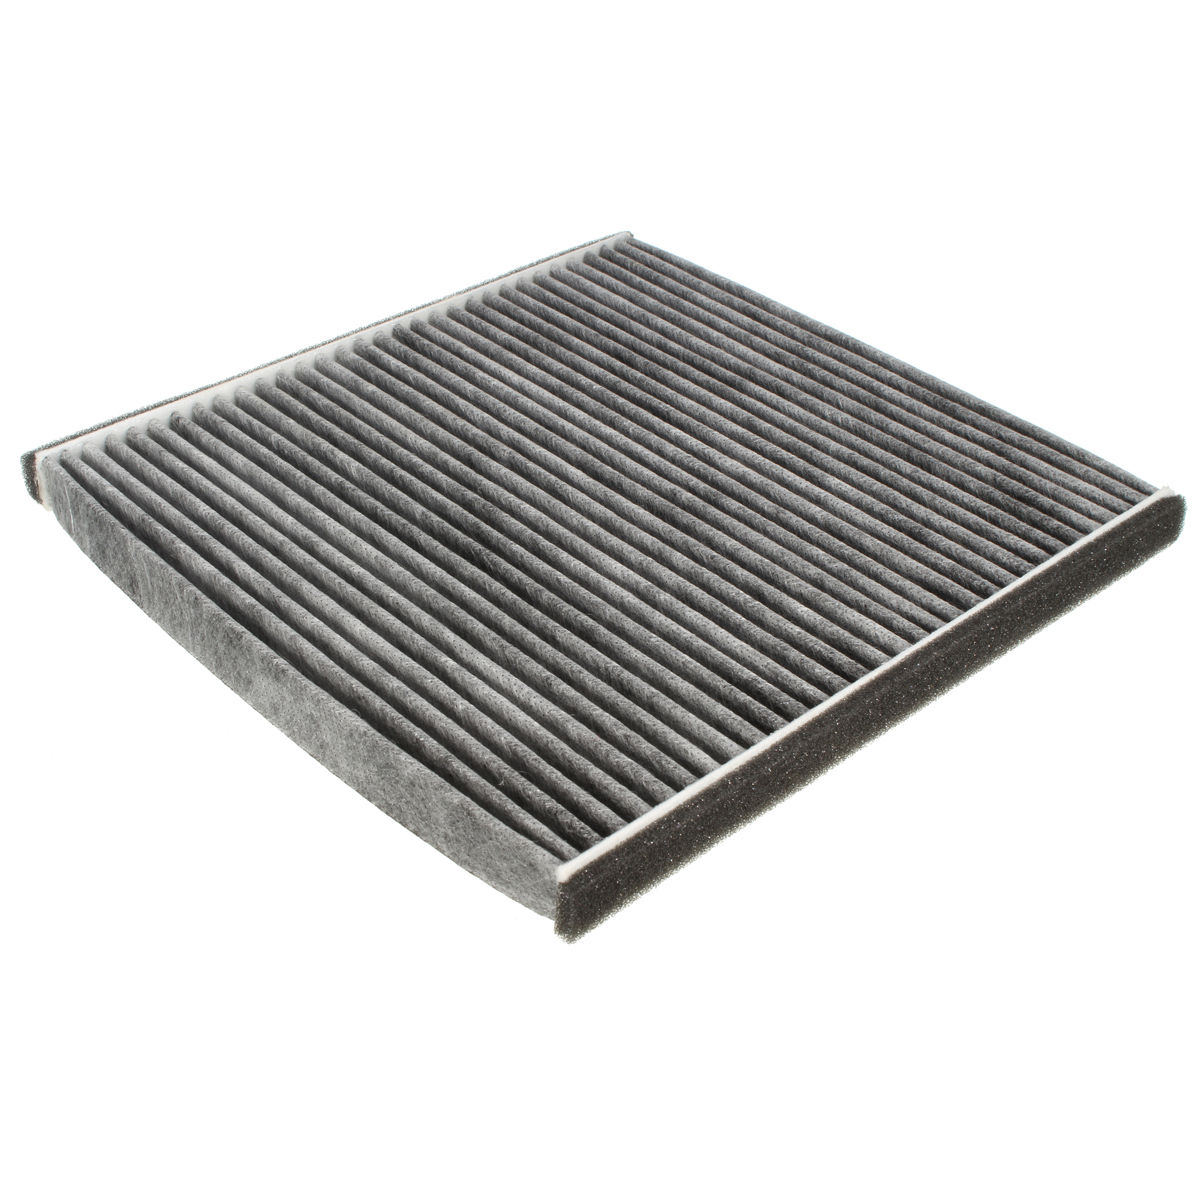 cabin air filter for toyota solara 2002 2008 camry 2002 On 2002 toyota camry cabin air filter replacement